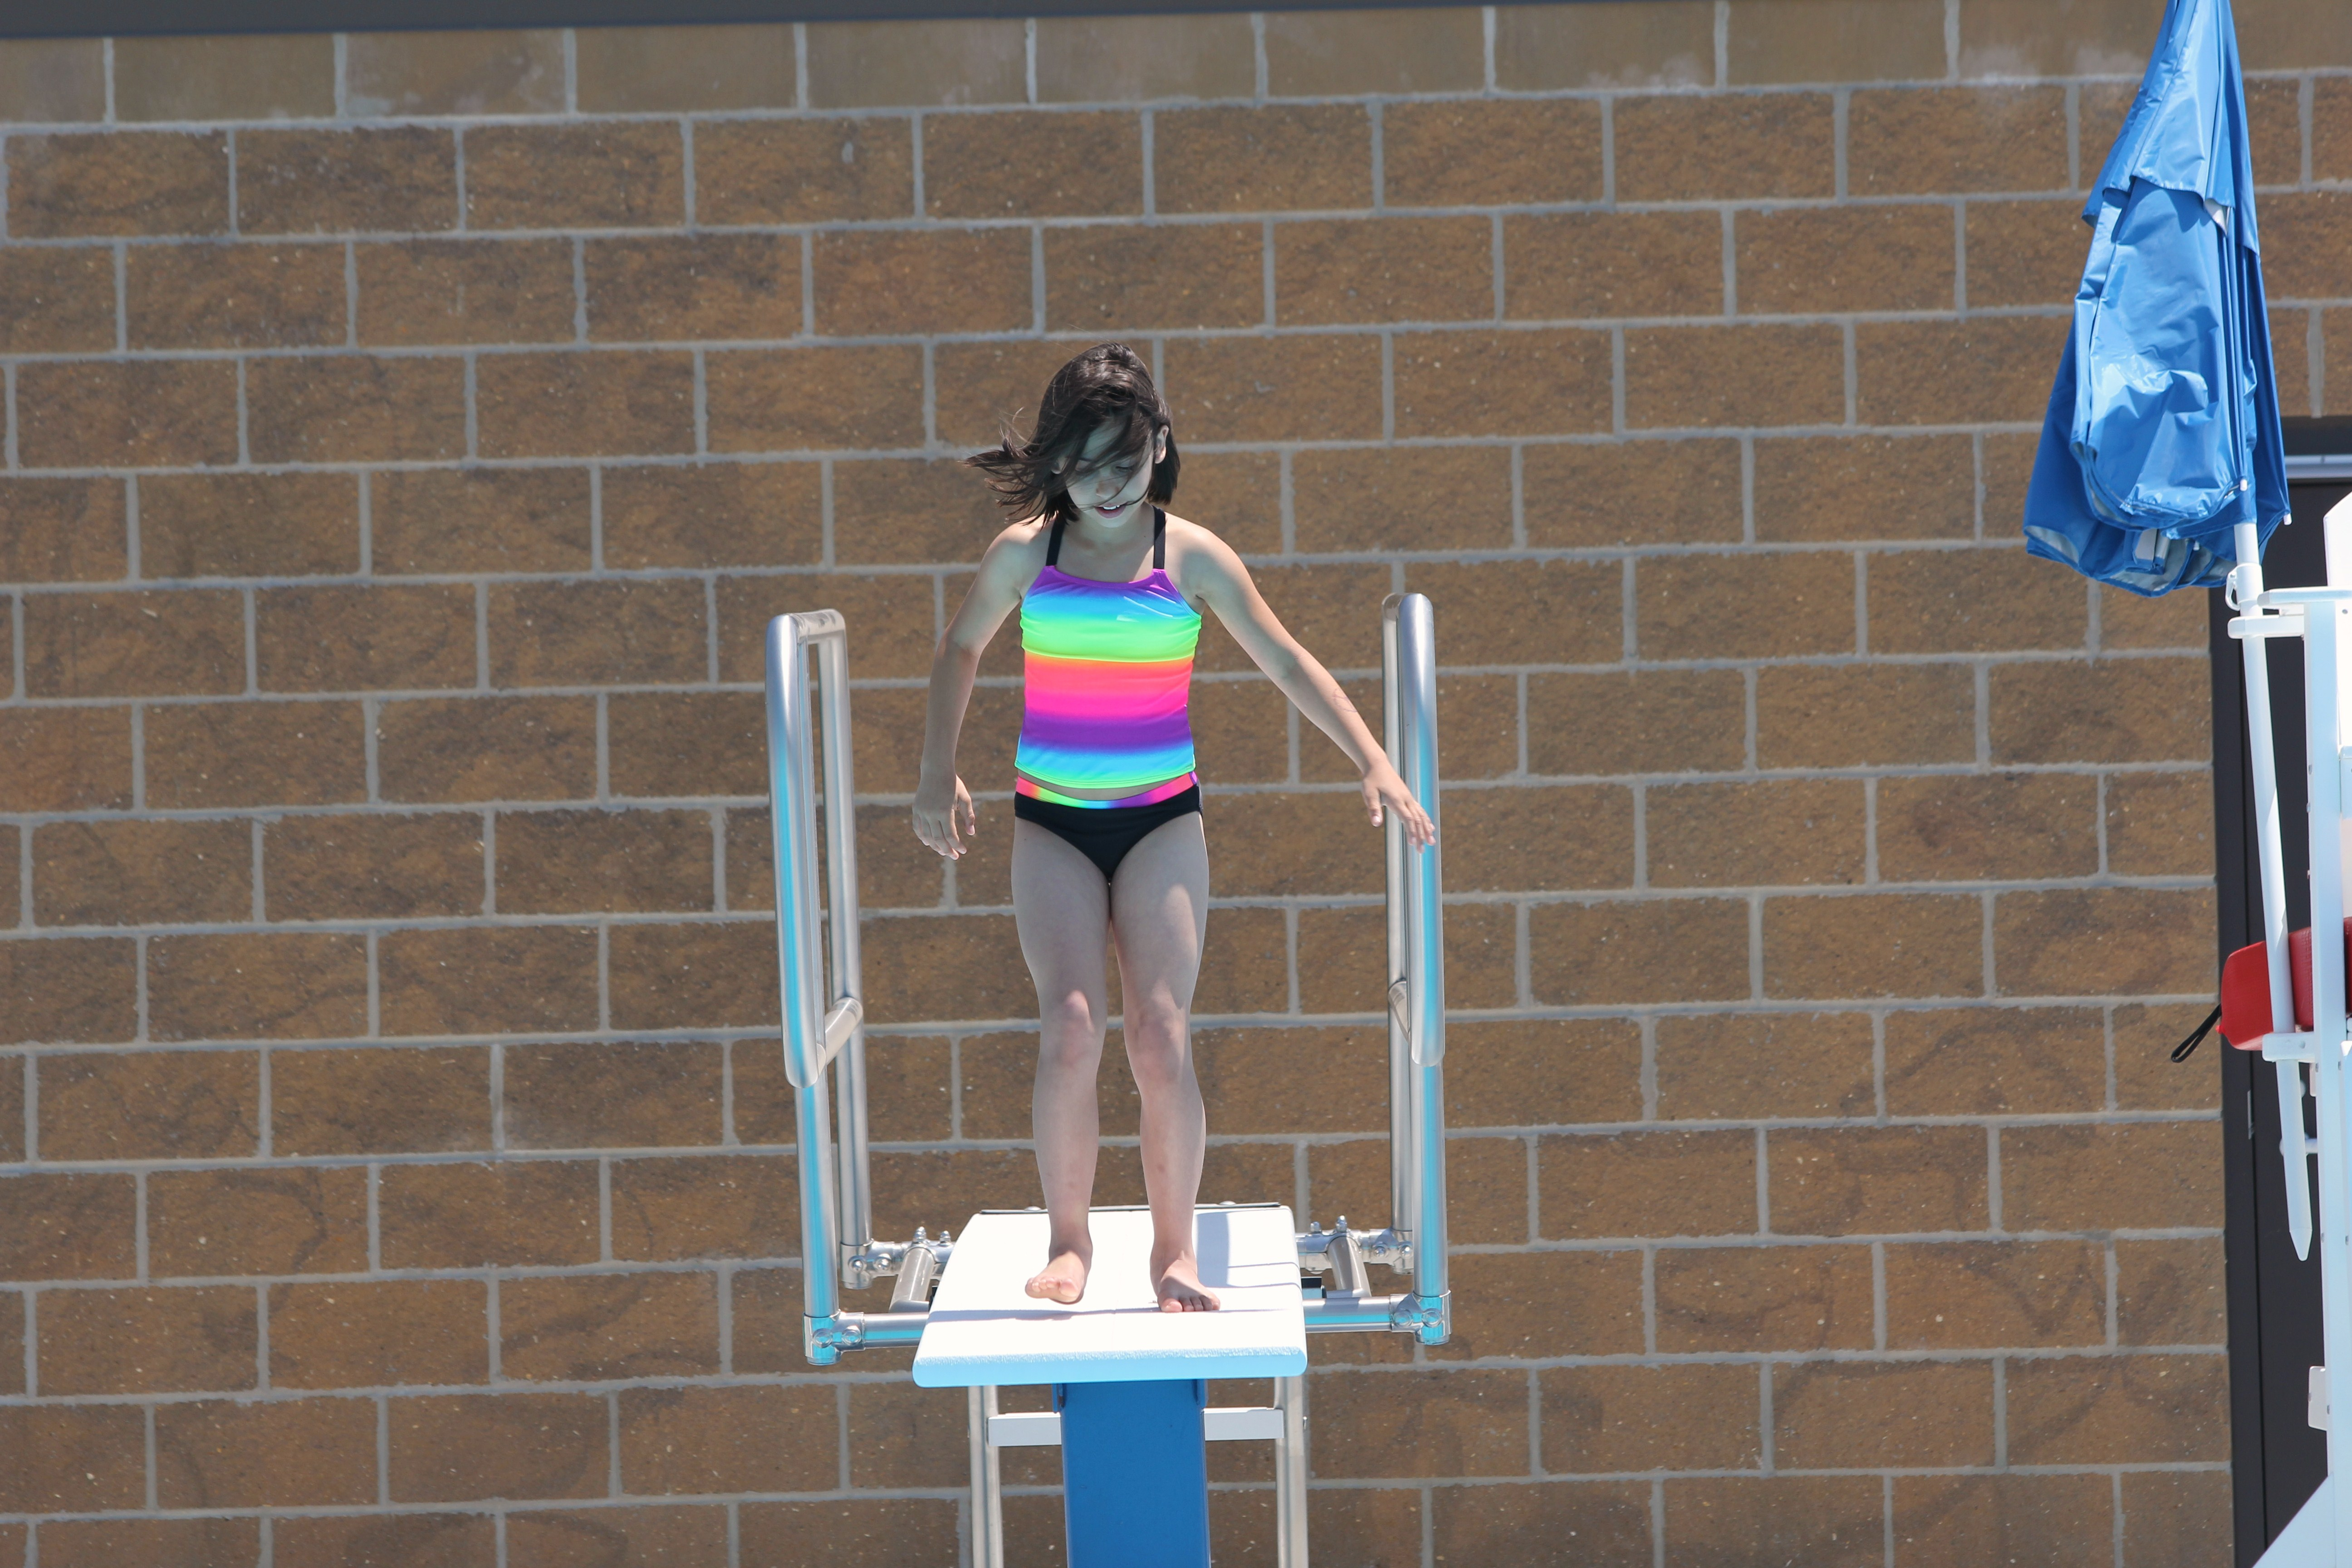 Getting ready to go off the diving board.